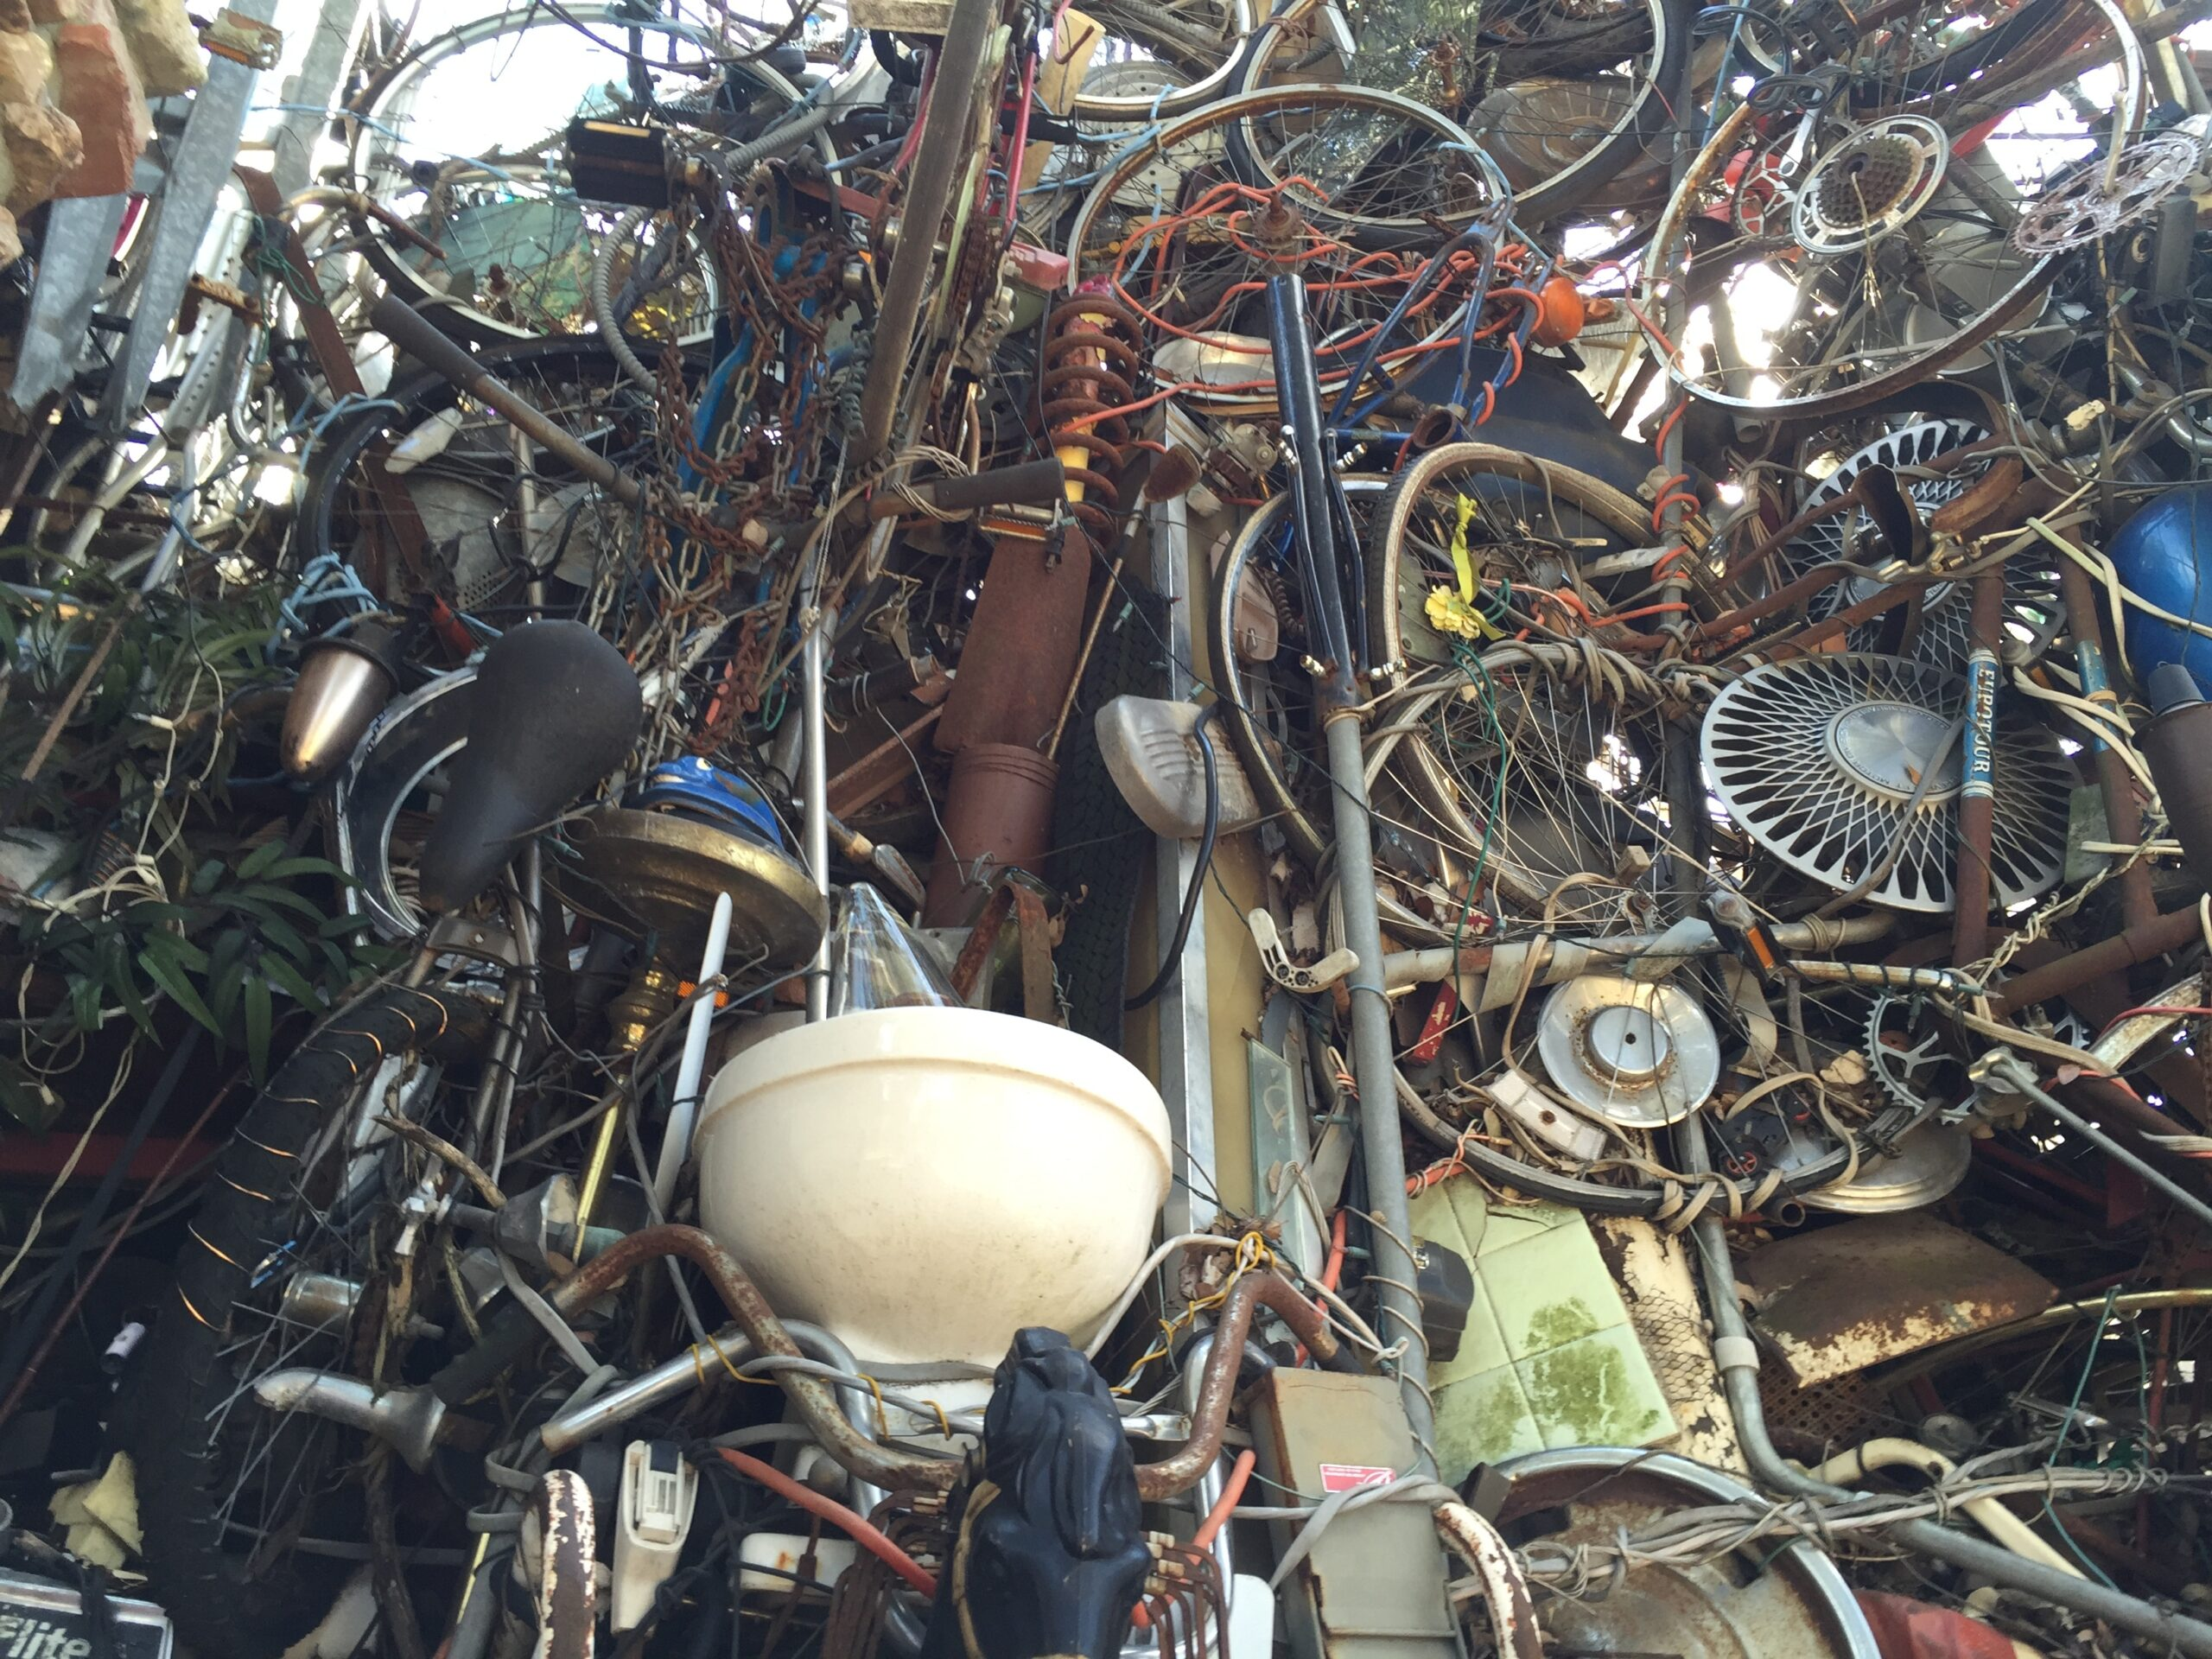 Cathedral of Junk - A wall of bicycles, wheels...and a toilet